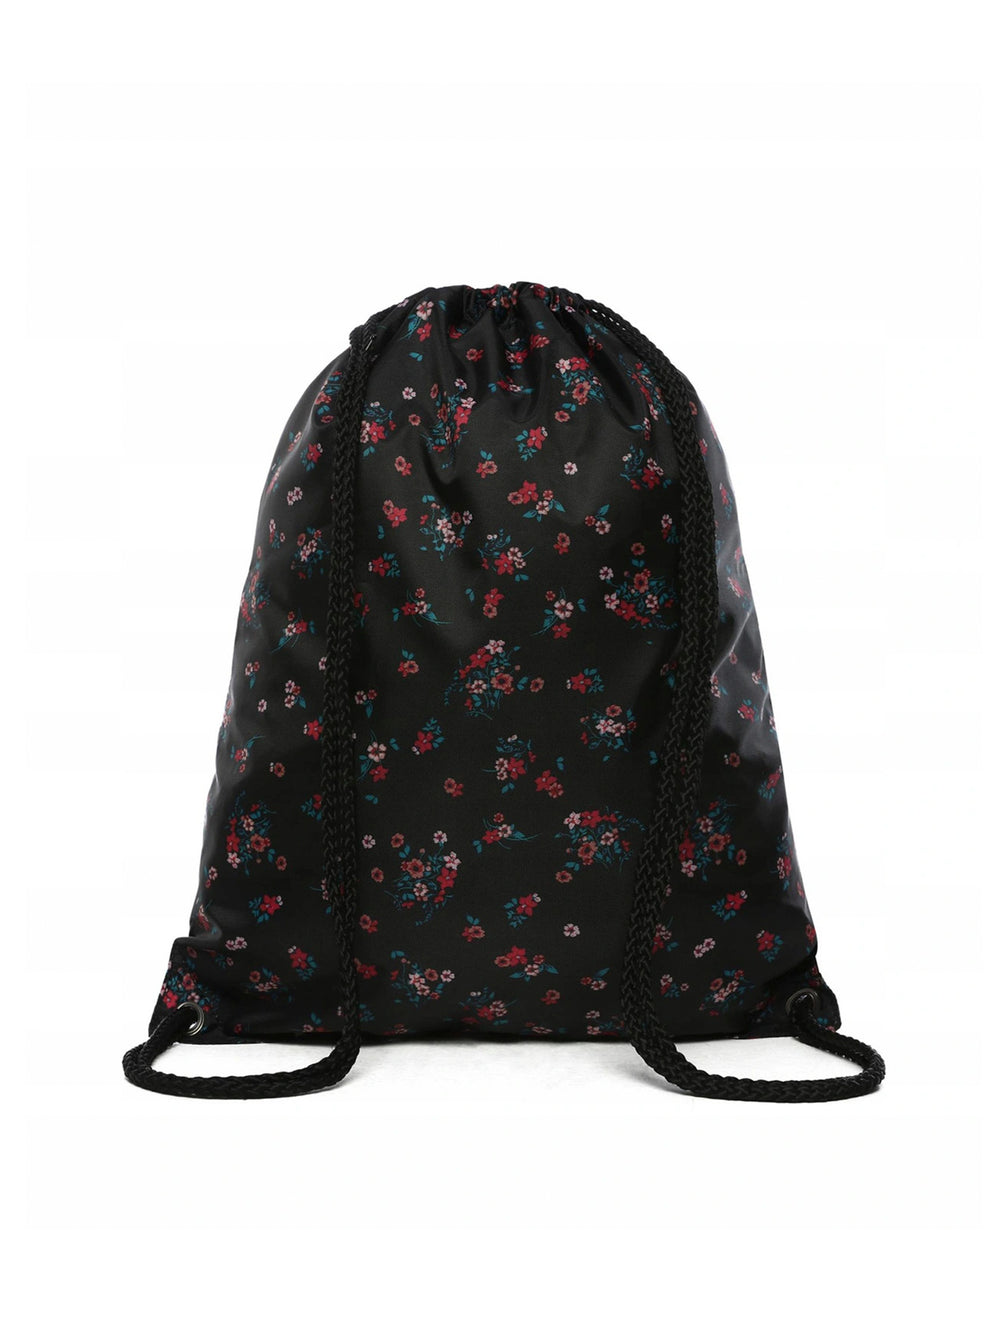 BENCHED BAG - BEAUTY FLORAL